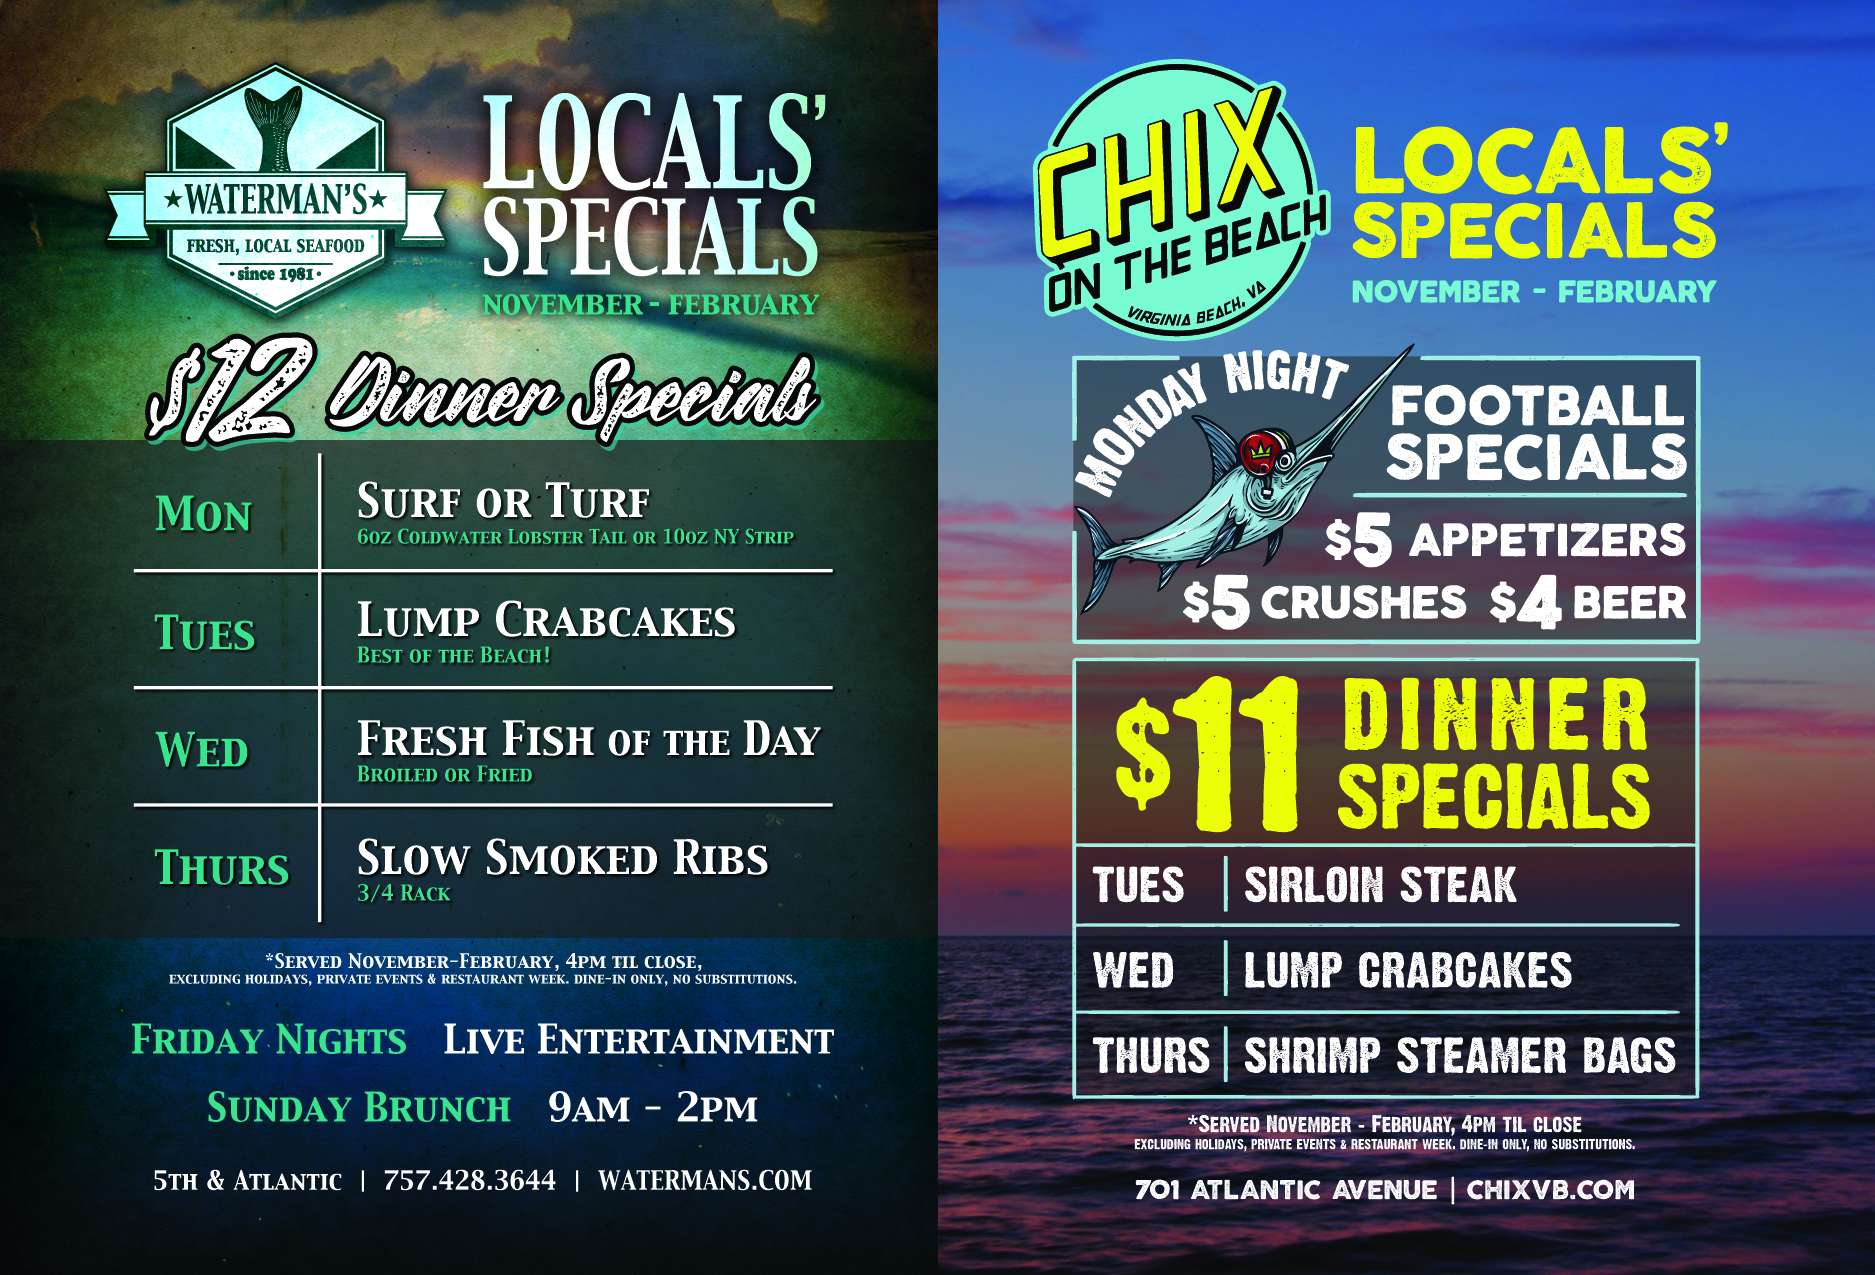 Waterman's and Chix Locals' Specials